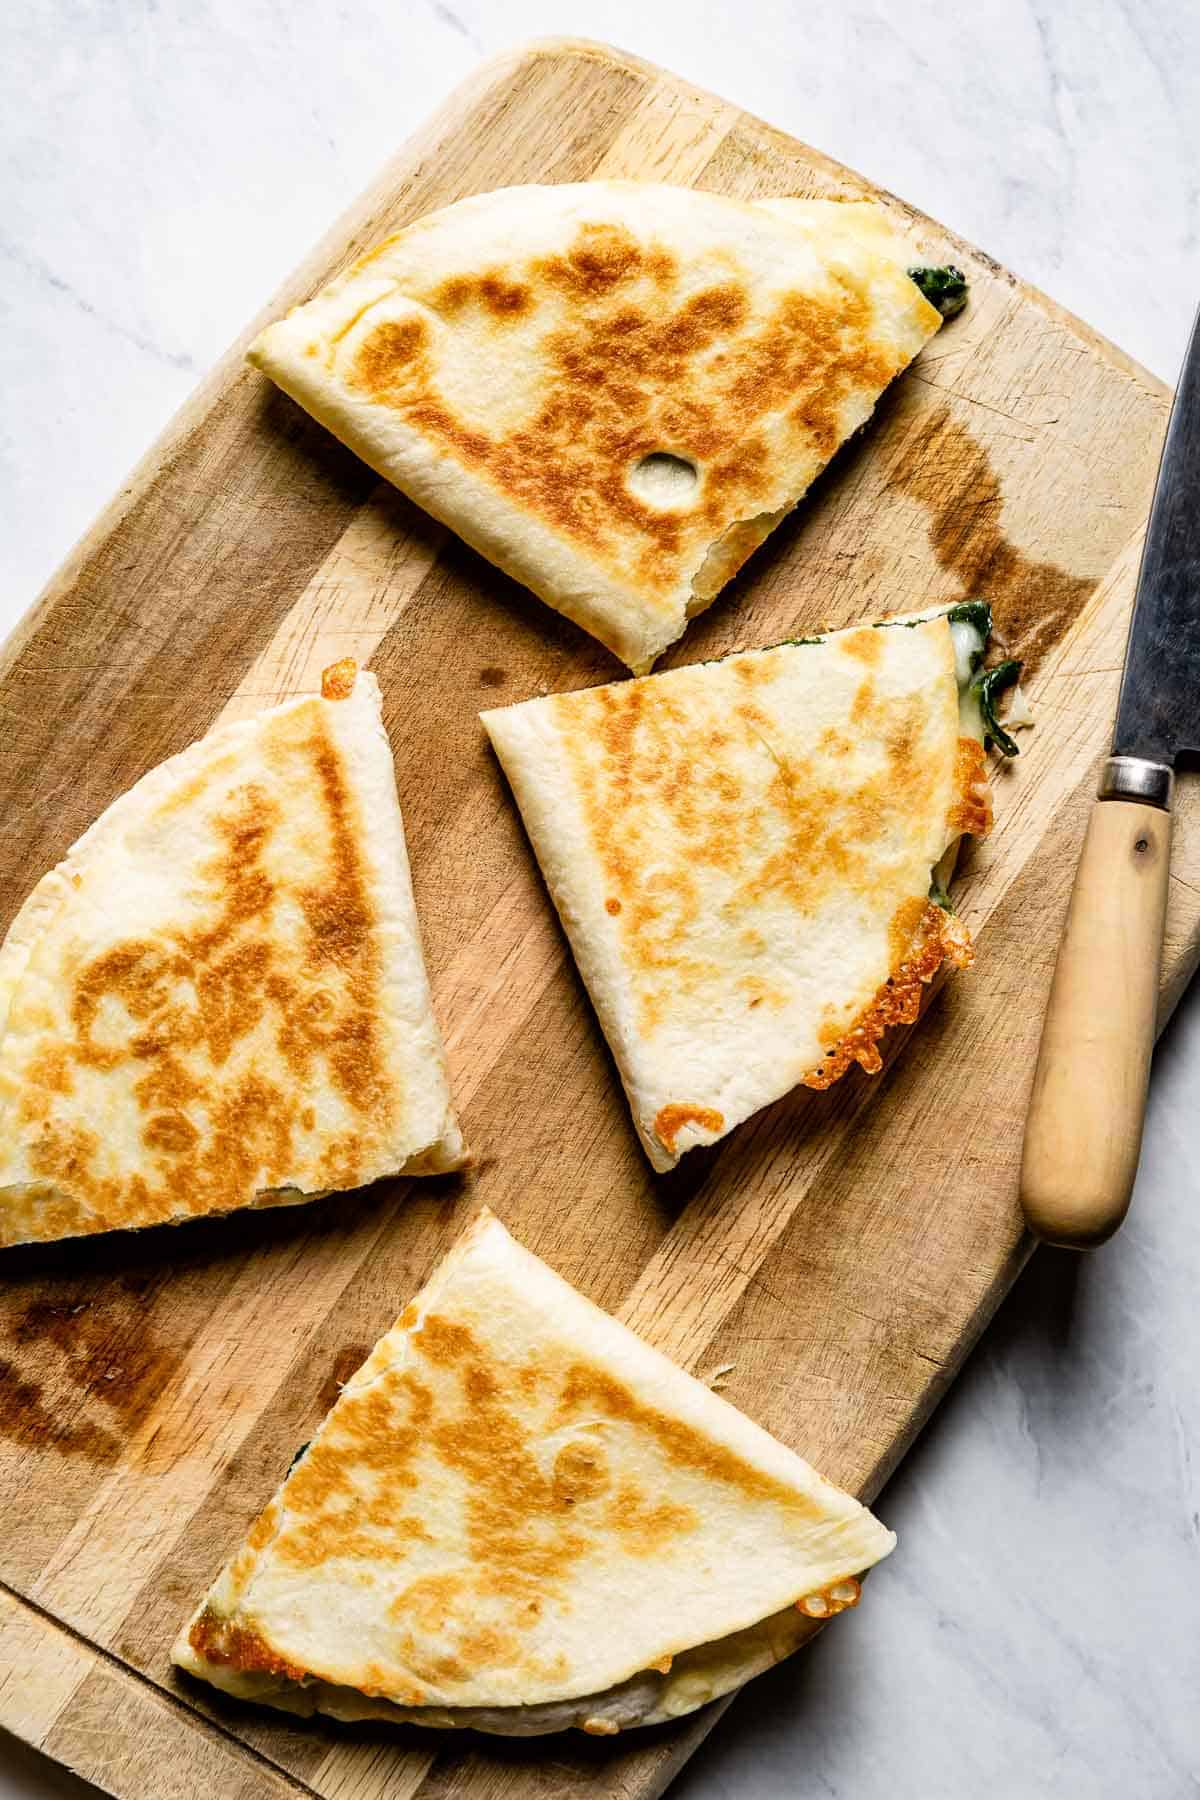 spinach cheese quesadilla cut into small pieces on a cutting board